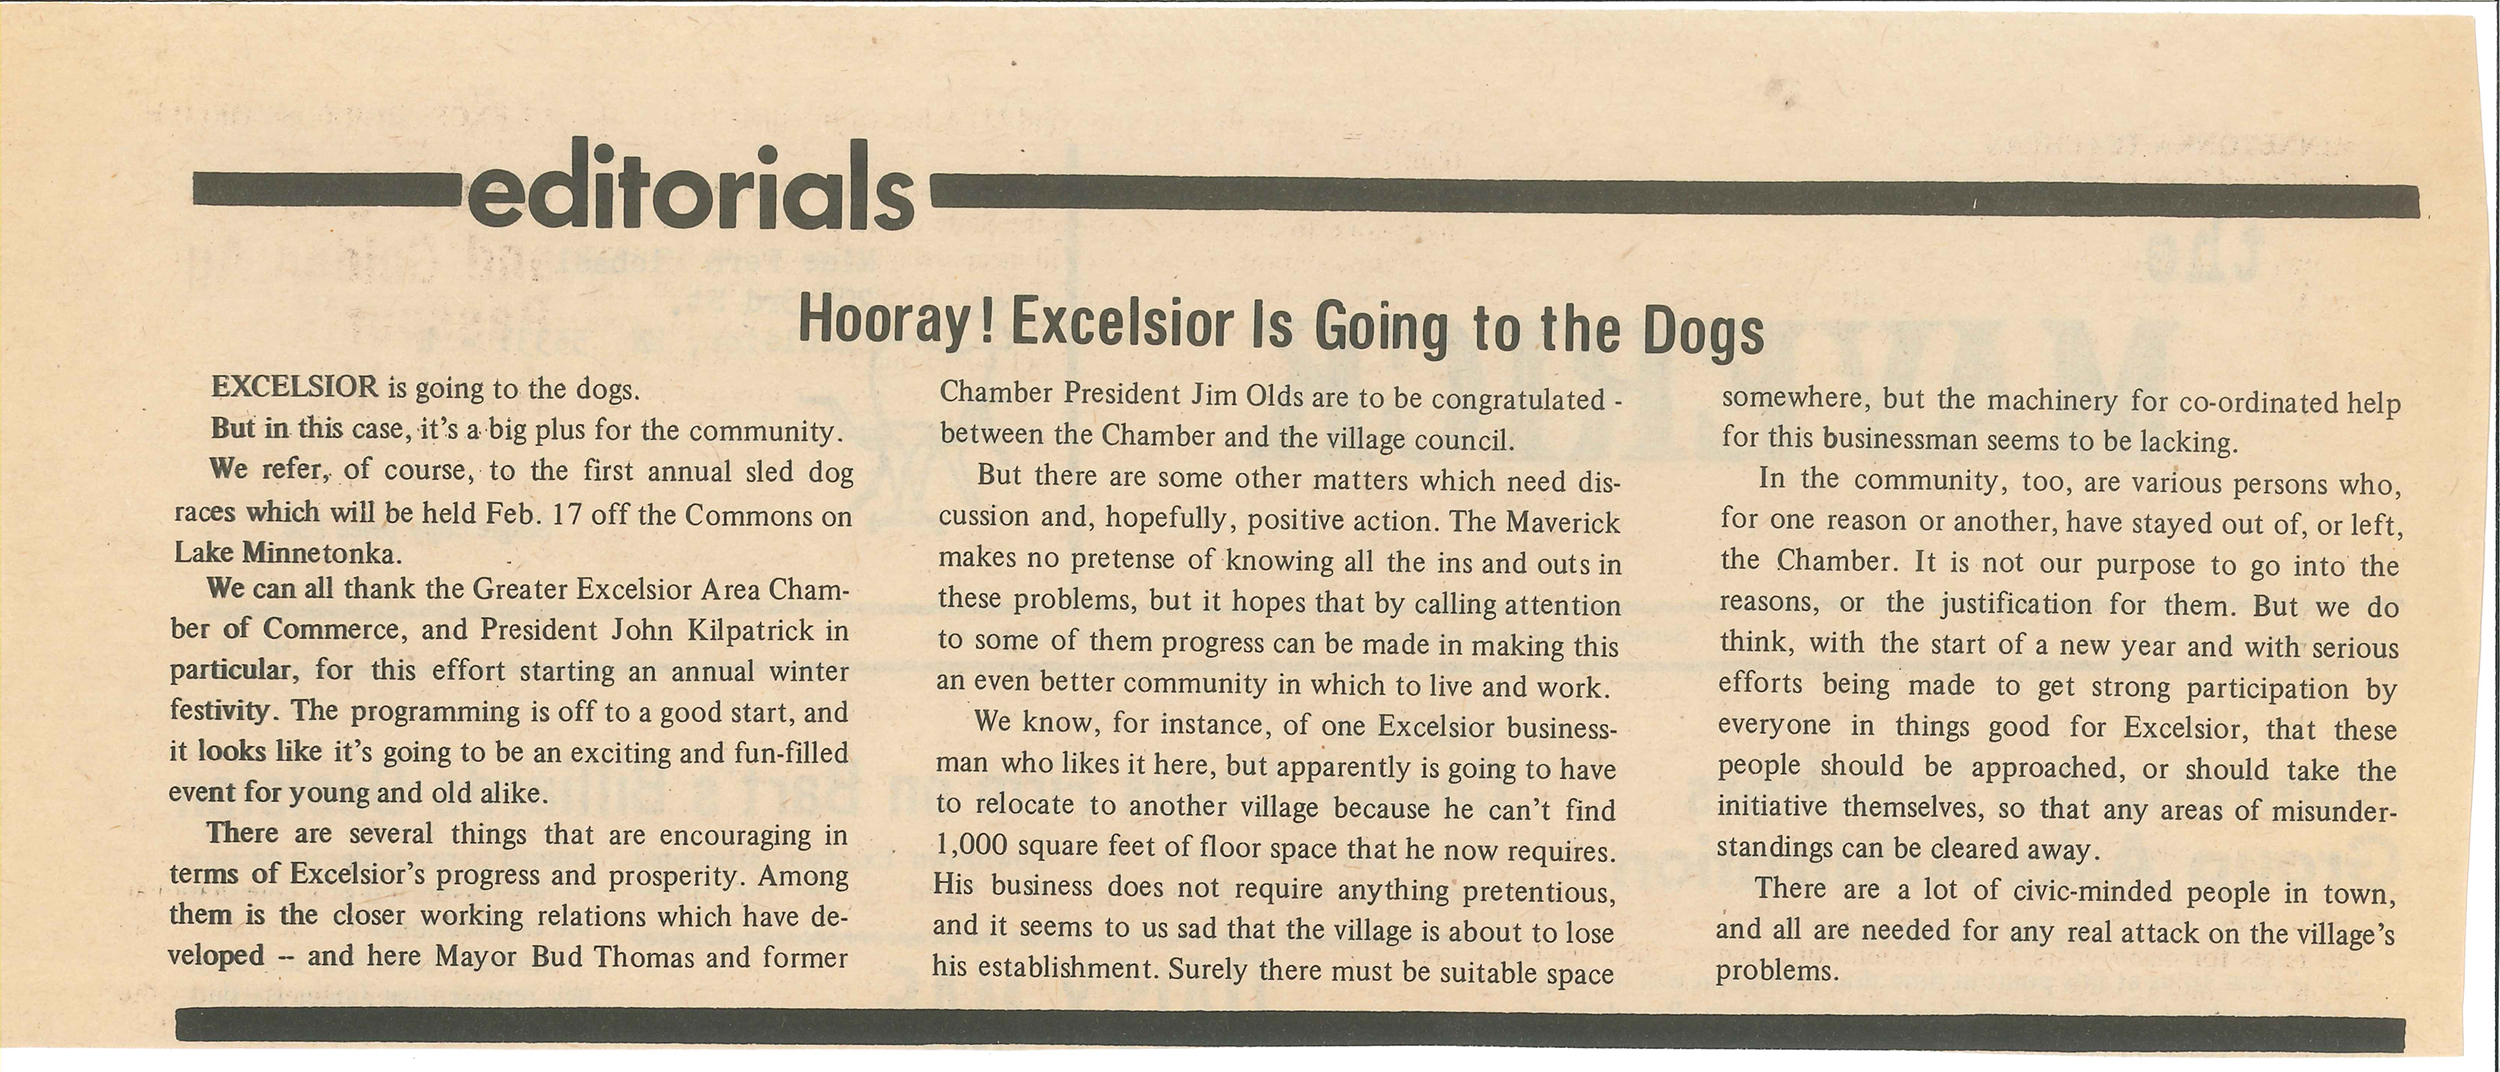 Editorials- Hooray Excelsior is going to the dogs.jpg